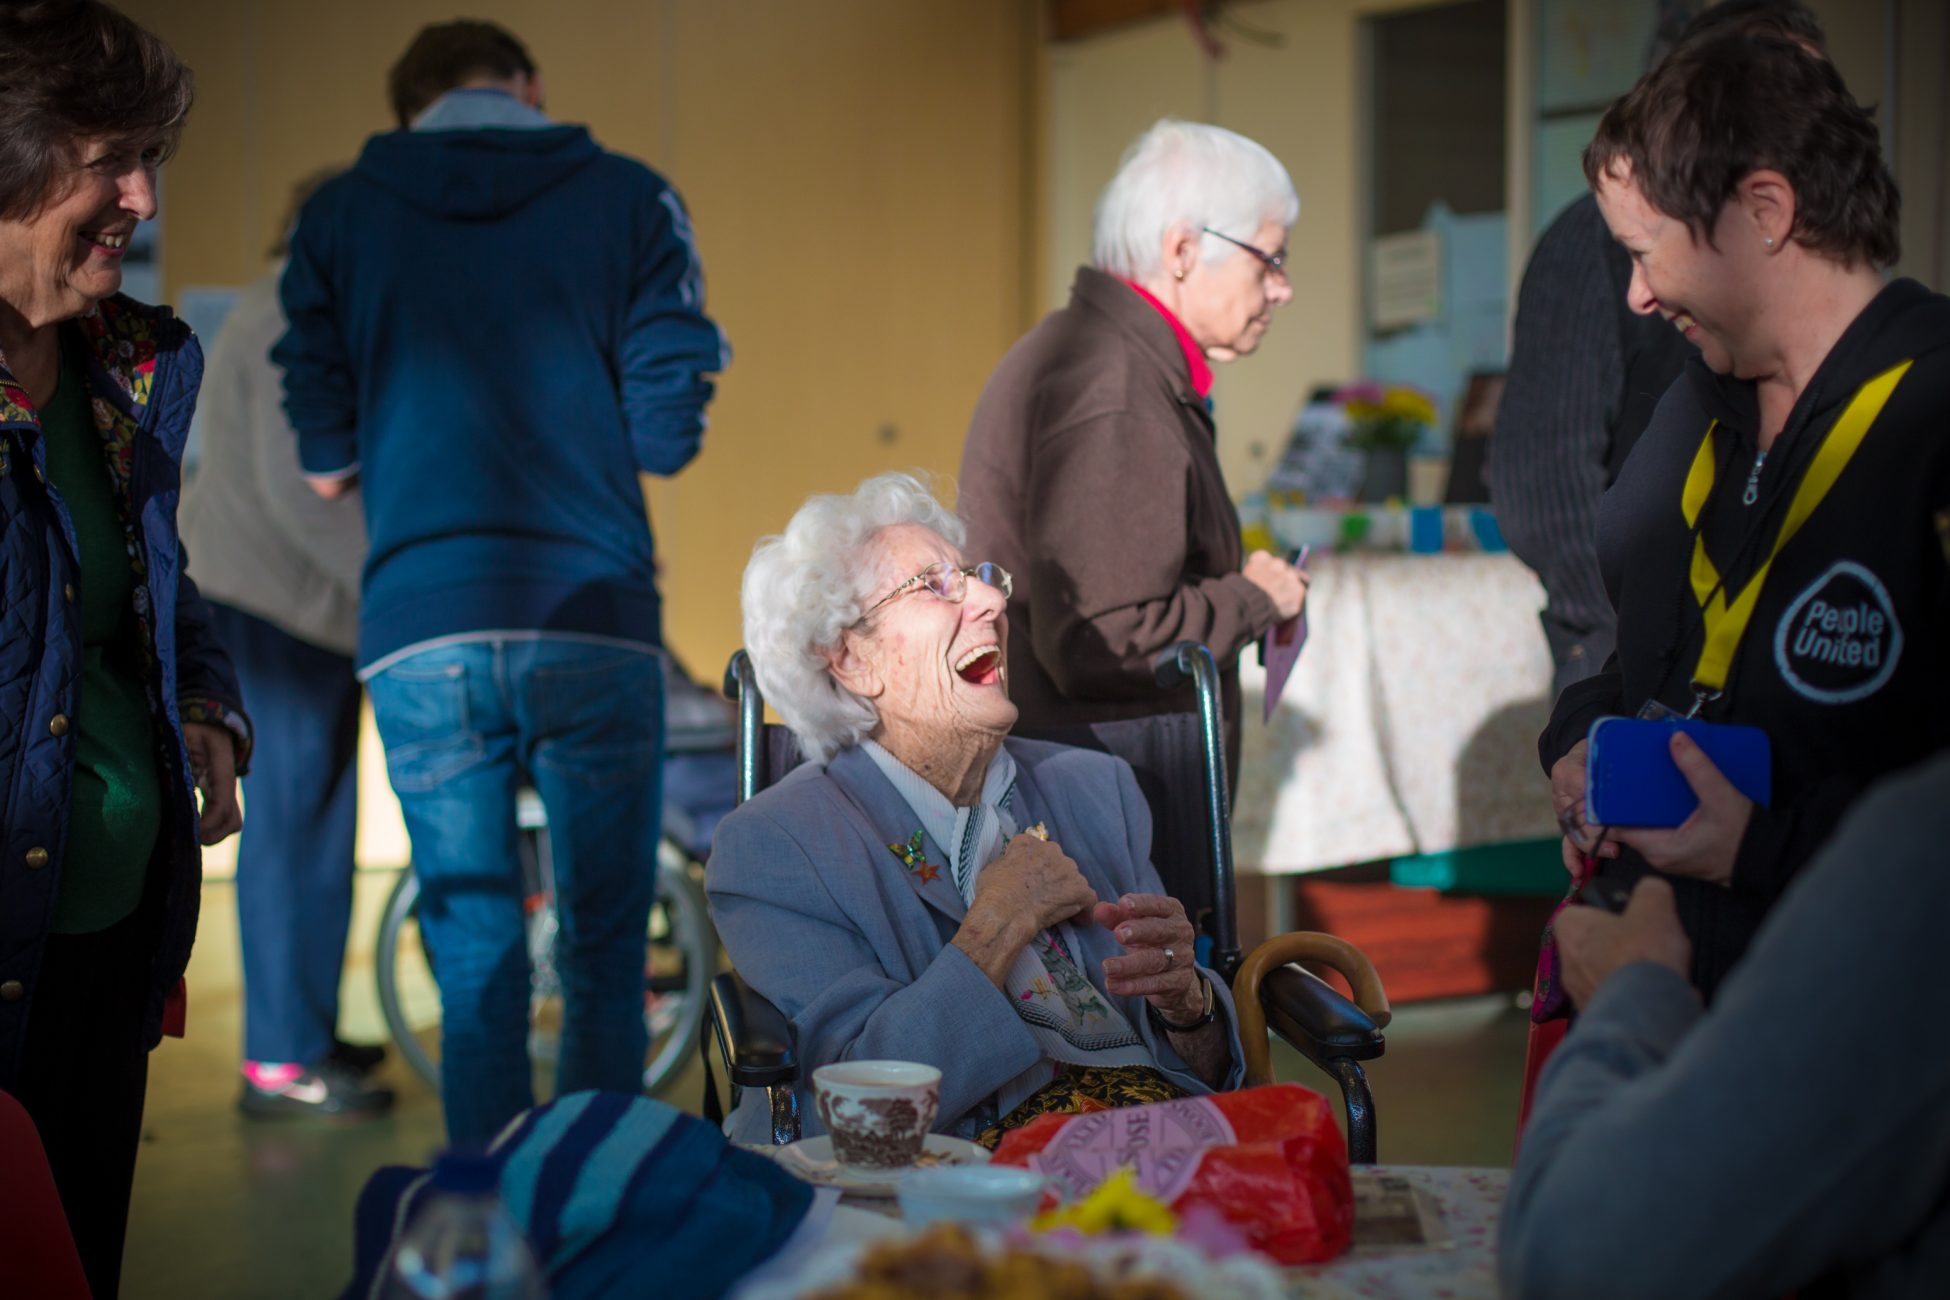 Photo of a hall or community centre with people milling about. In the foreground an older woman is sitting in a wheelchair next to a table with biscuits and an ornate cup and saucer. The woman is mid conversation with a woman who is standing next to the table and they're both laughing.